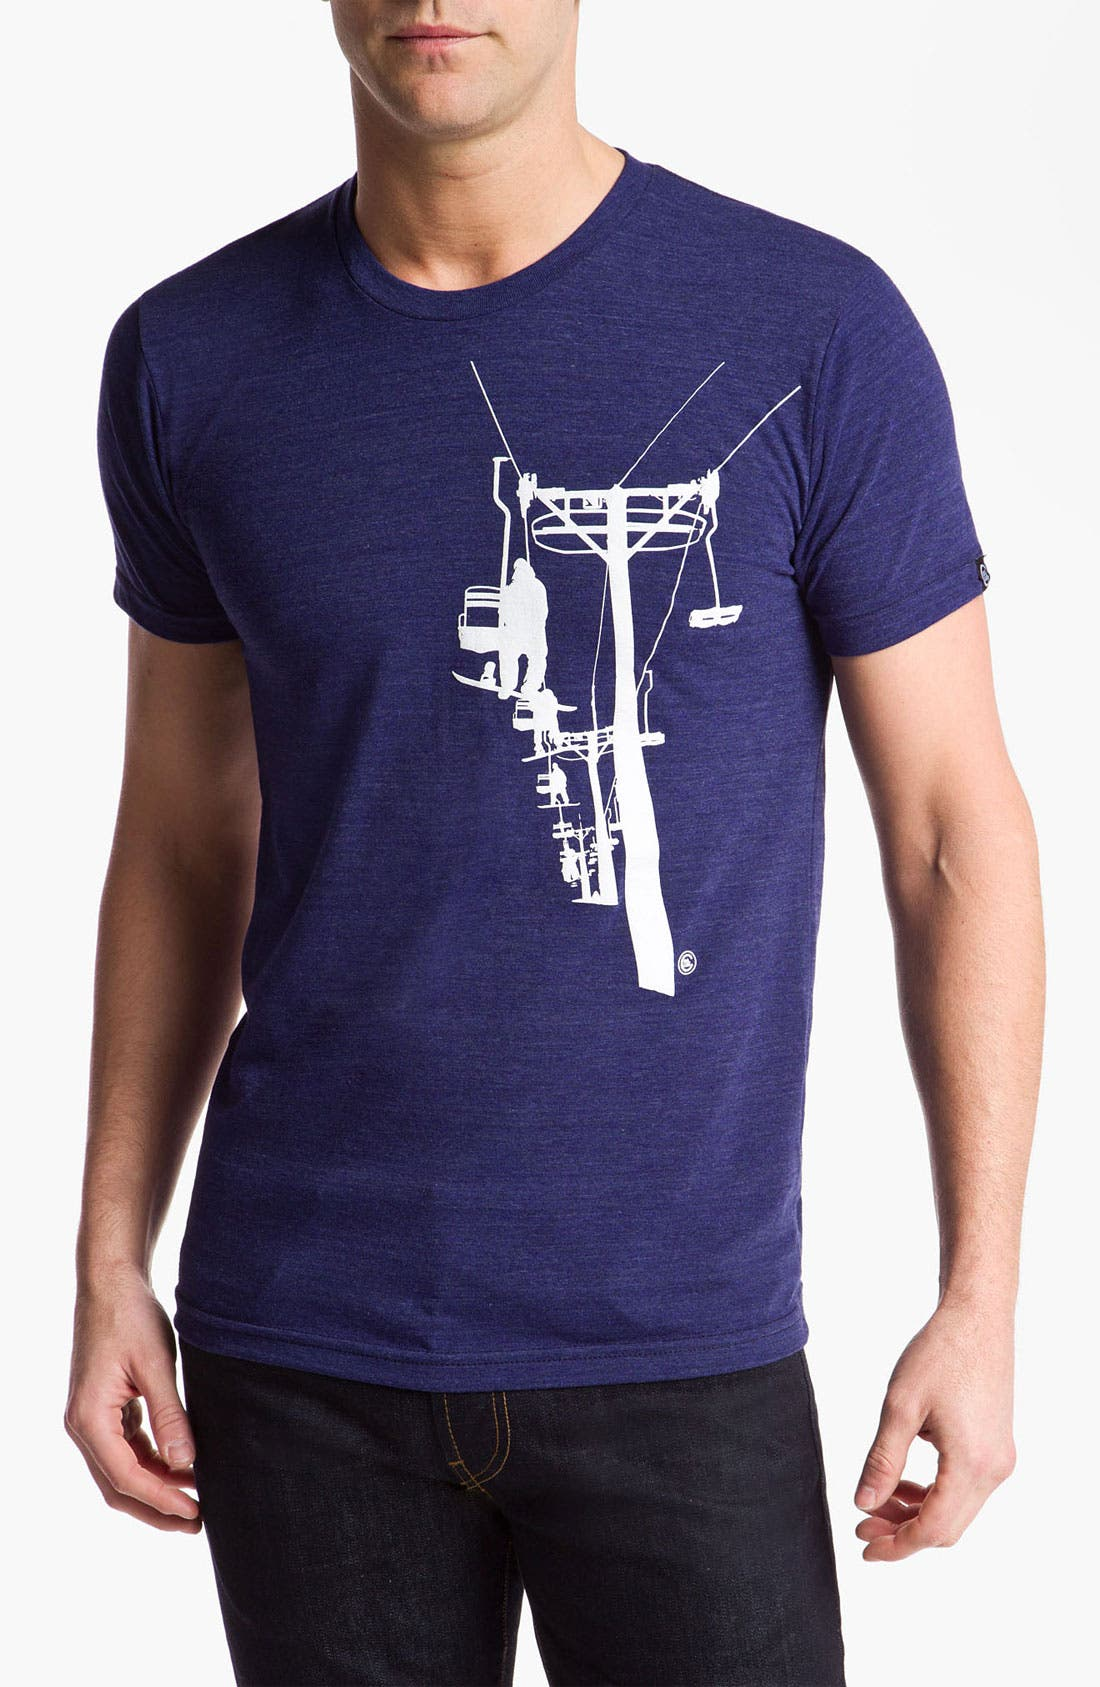 Alternate Image 1 Selected - Casual Industrees 'Chairlift' T-Shirt